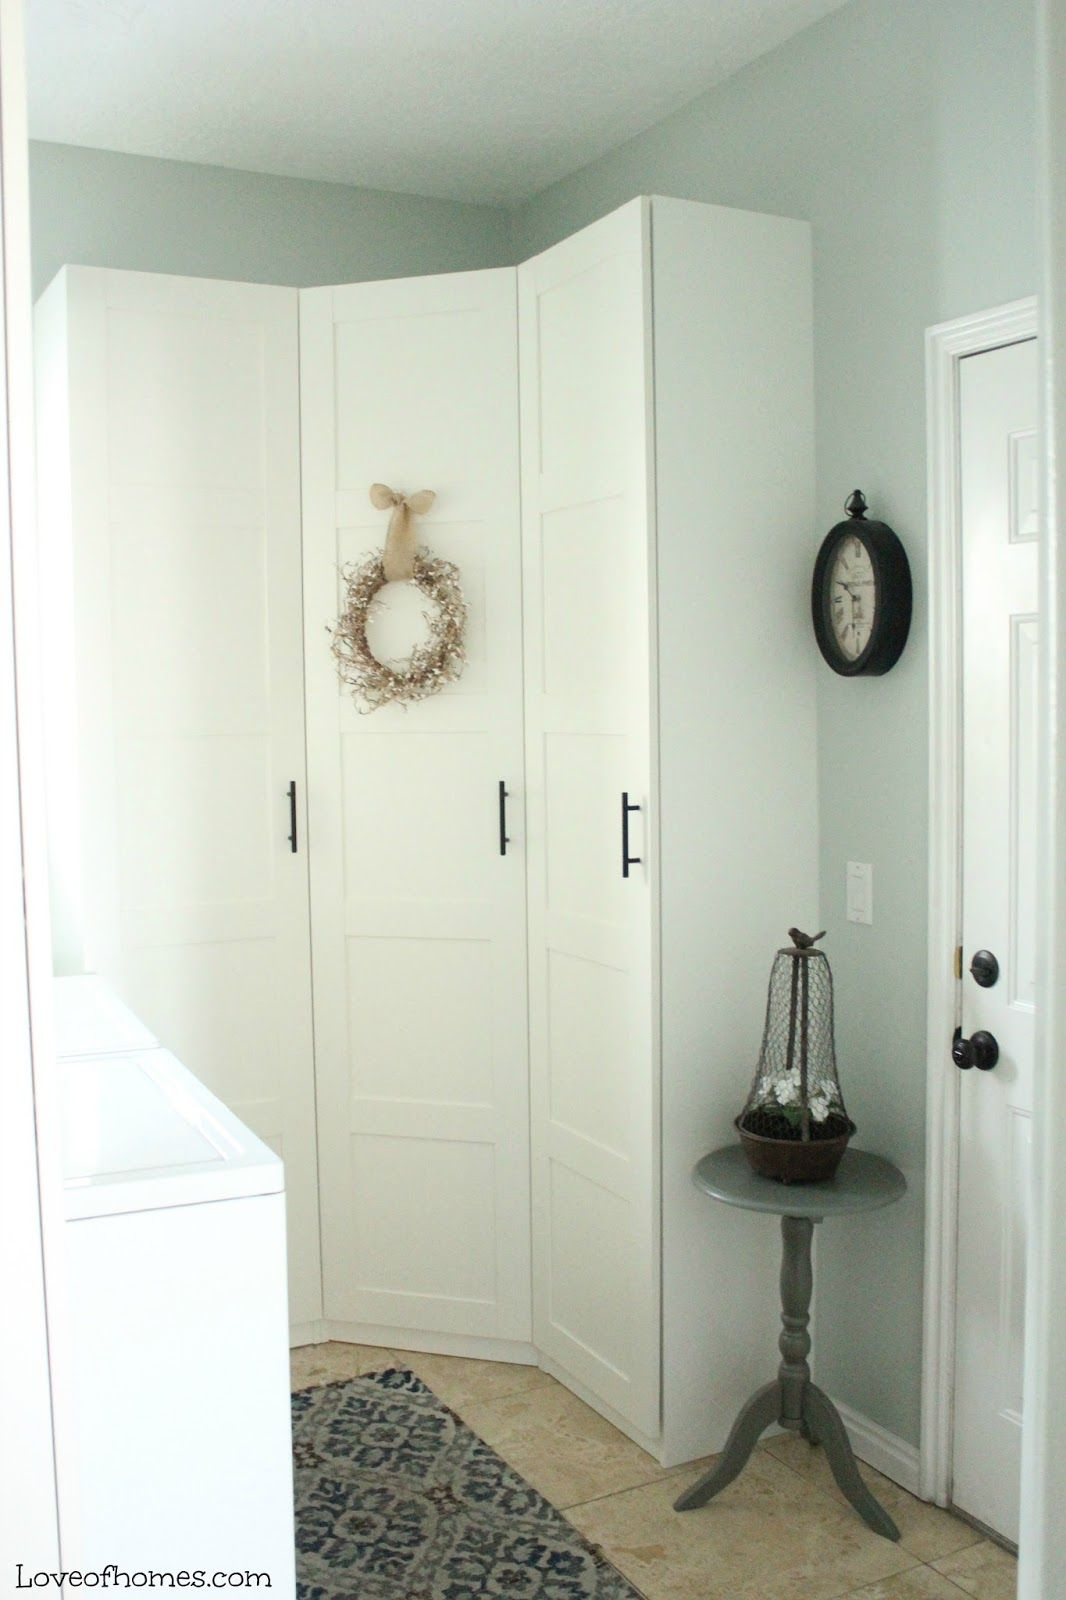 Inspiring Mudrooms And A {REVEAL} (With Images)